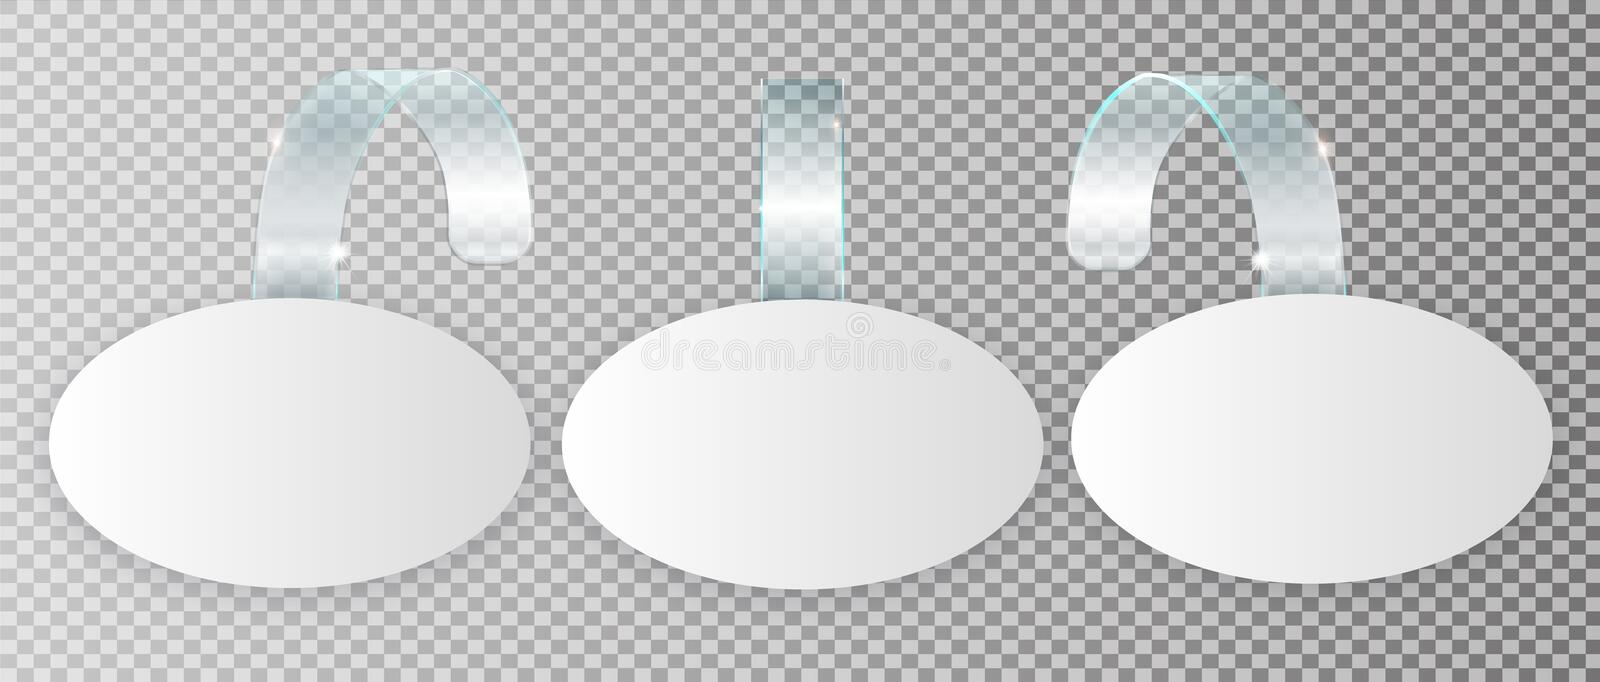 Blank white wobbler hang on wall mock up, 3d rendering. Space round paper mockup on plastic transparent strip. Clear vector illustration